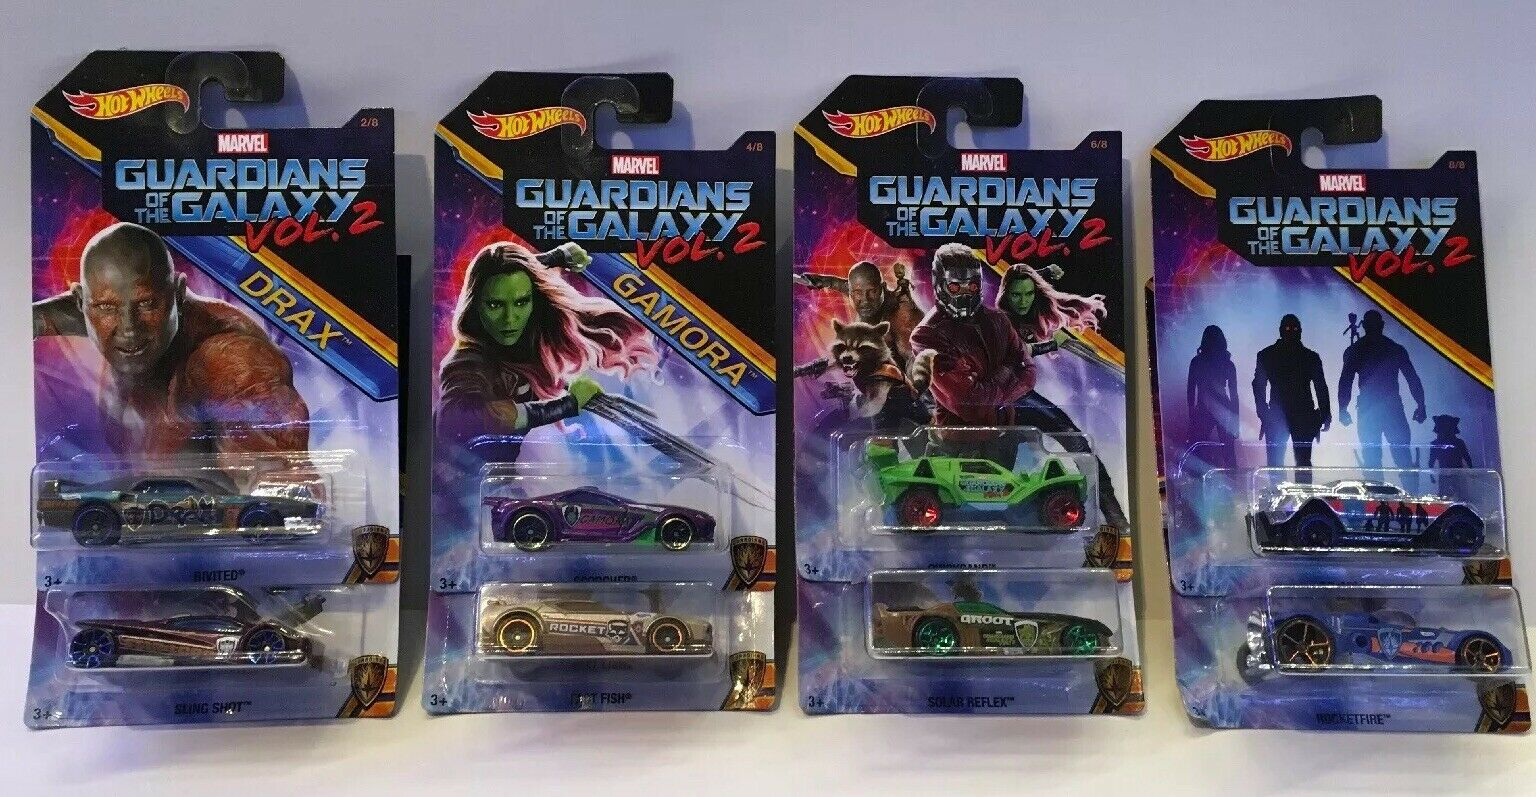 HOTWHEELS GUARDIANS OF THE GALAXY COLLECTION SET. COLLECTORS MODELS.